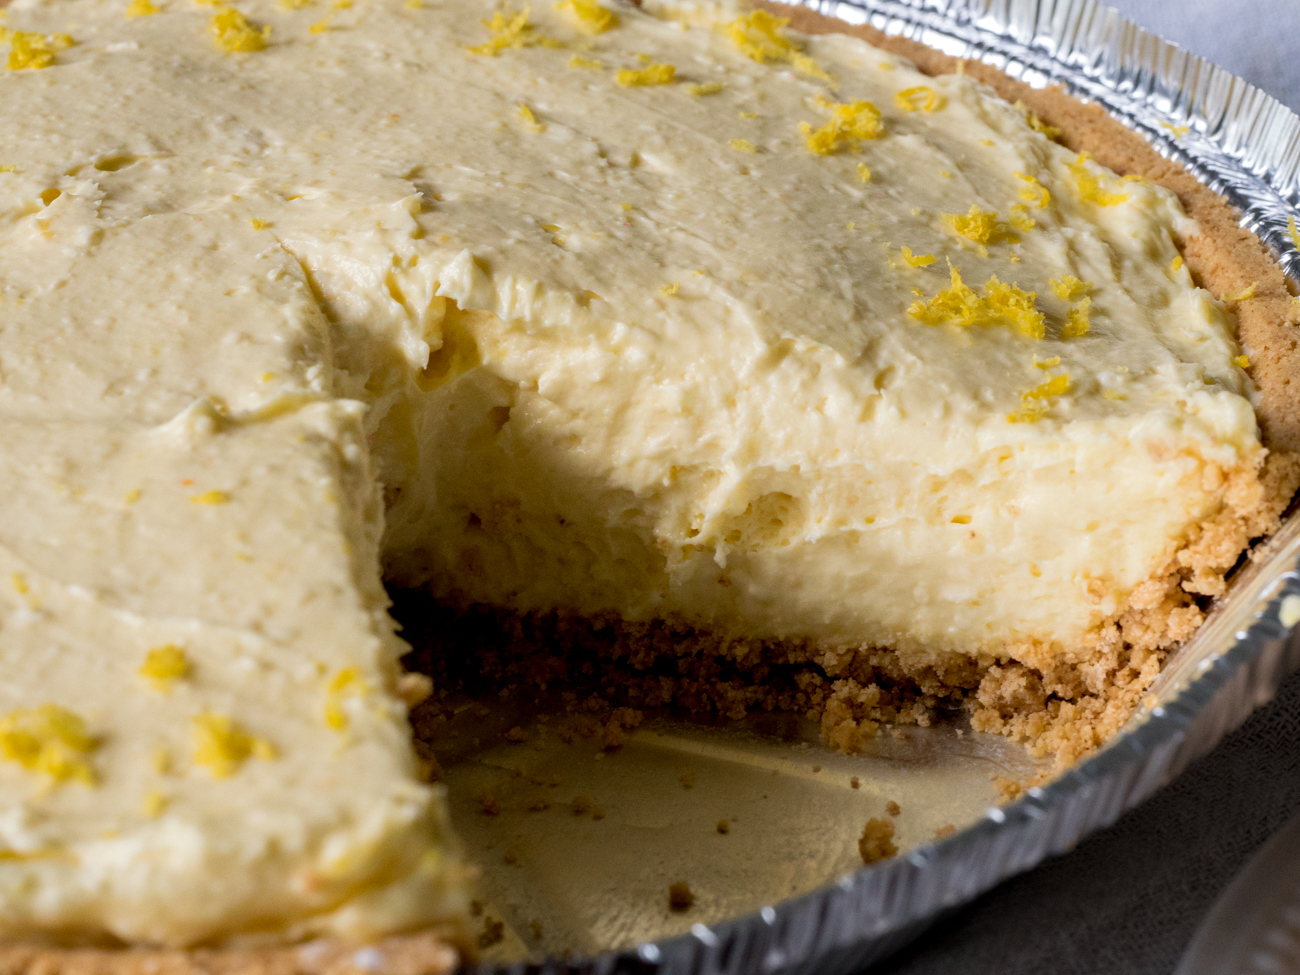 Cream Cheese Lemonade Pie Horizontal 4